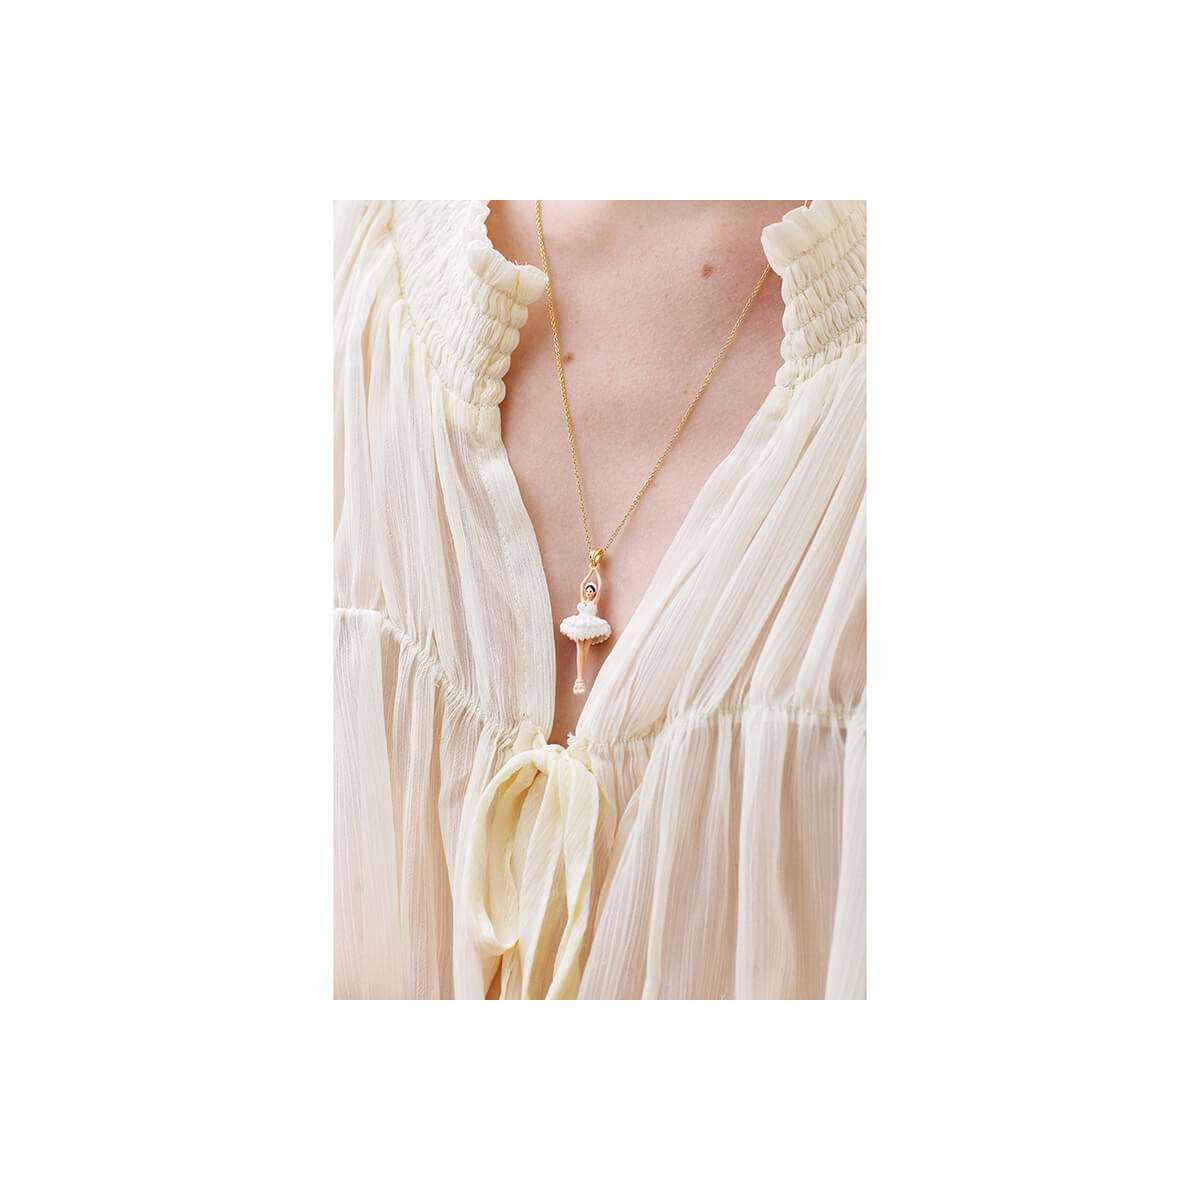 White Vampirella cord necklace